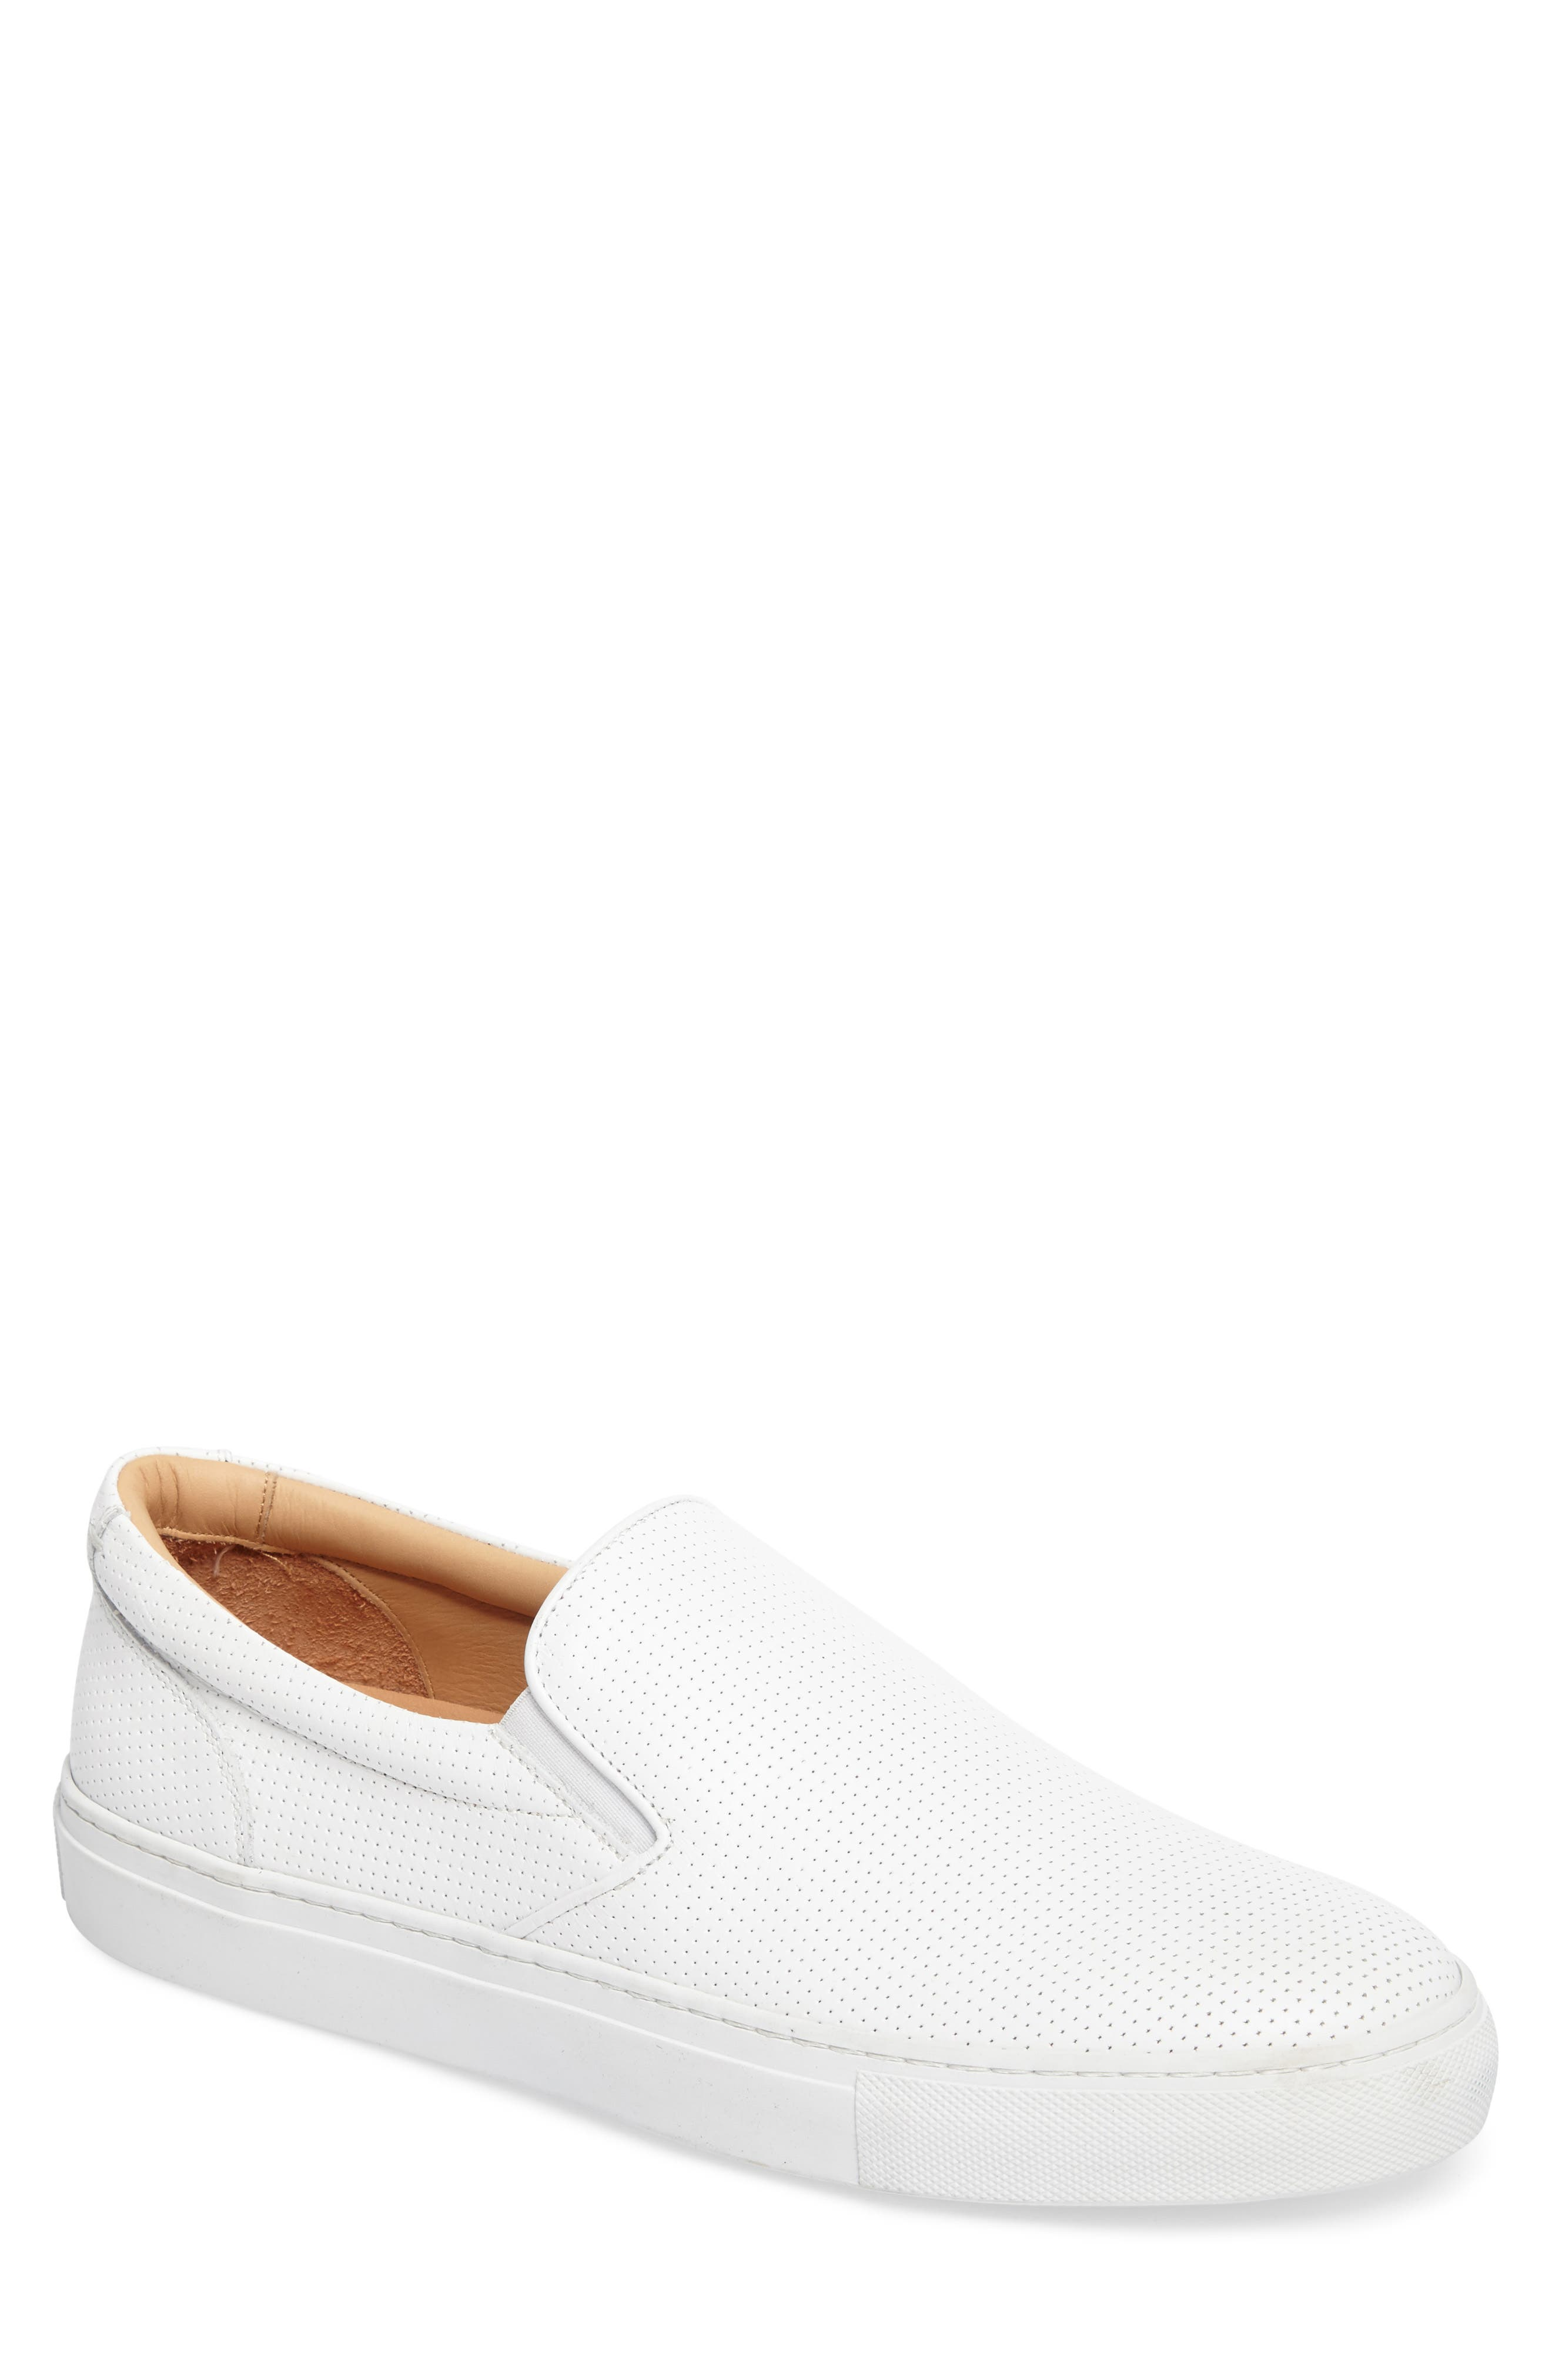 Wooster Slip-On Sneaker,                             Main thumbnail 1, color,                             WHITE PERFORATED LEATHER